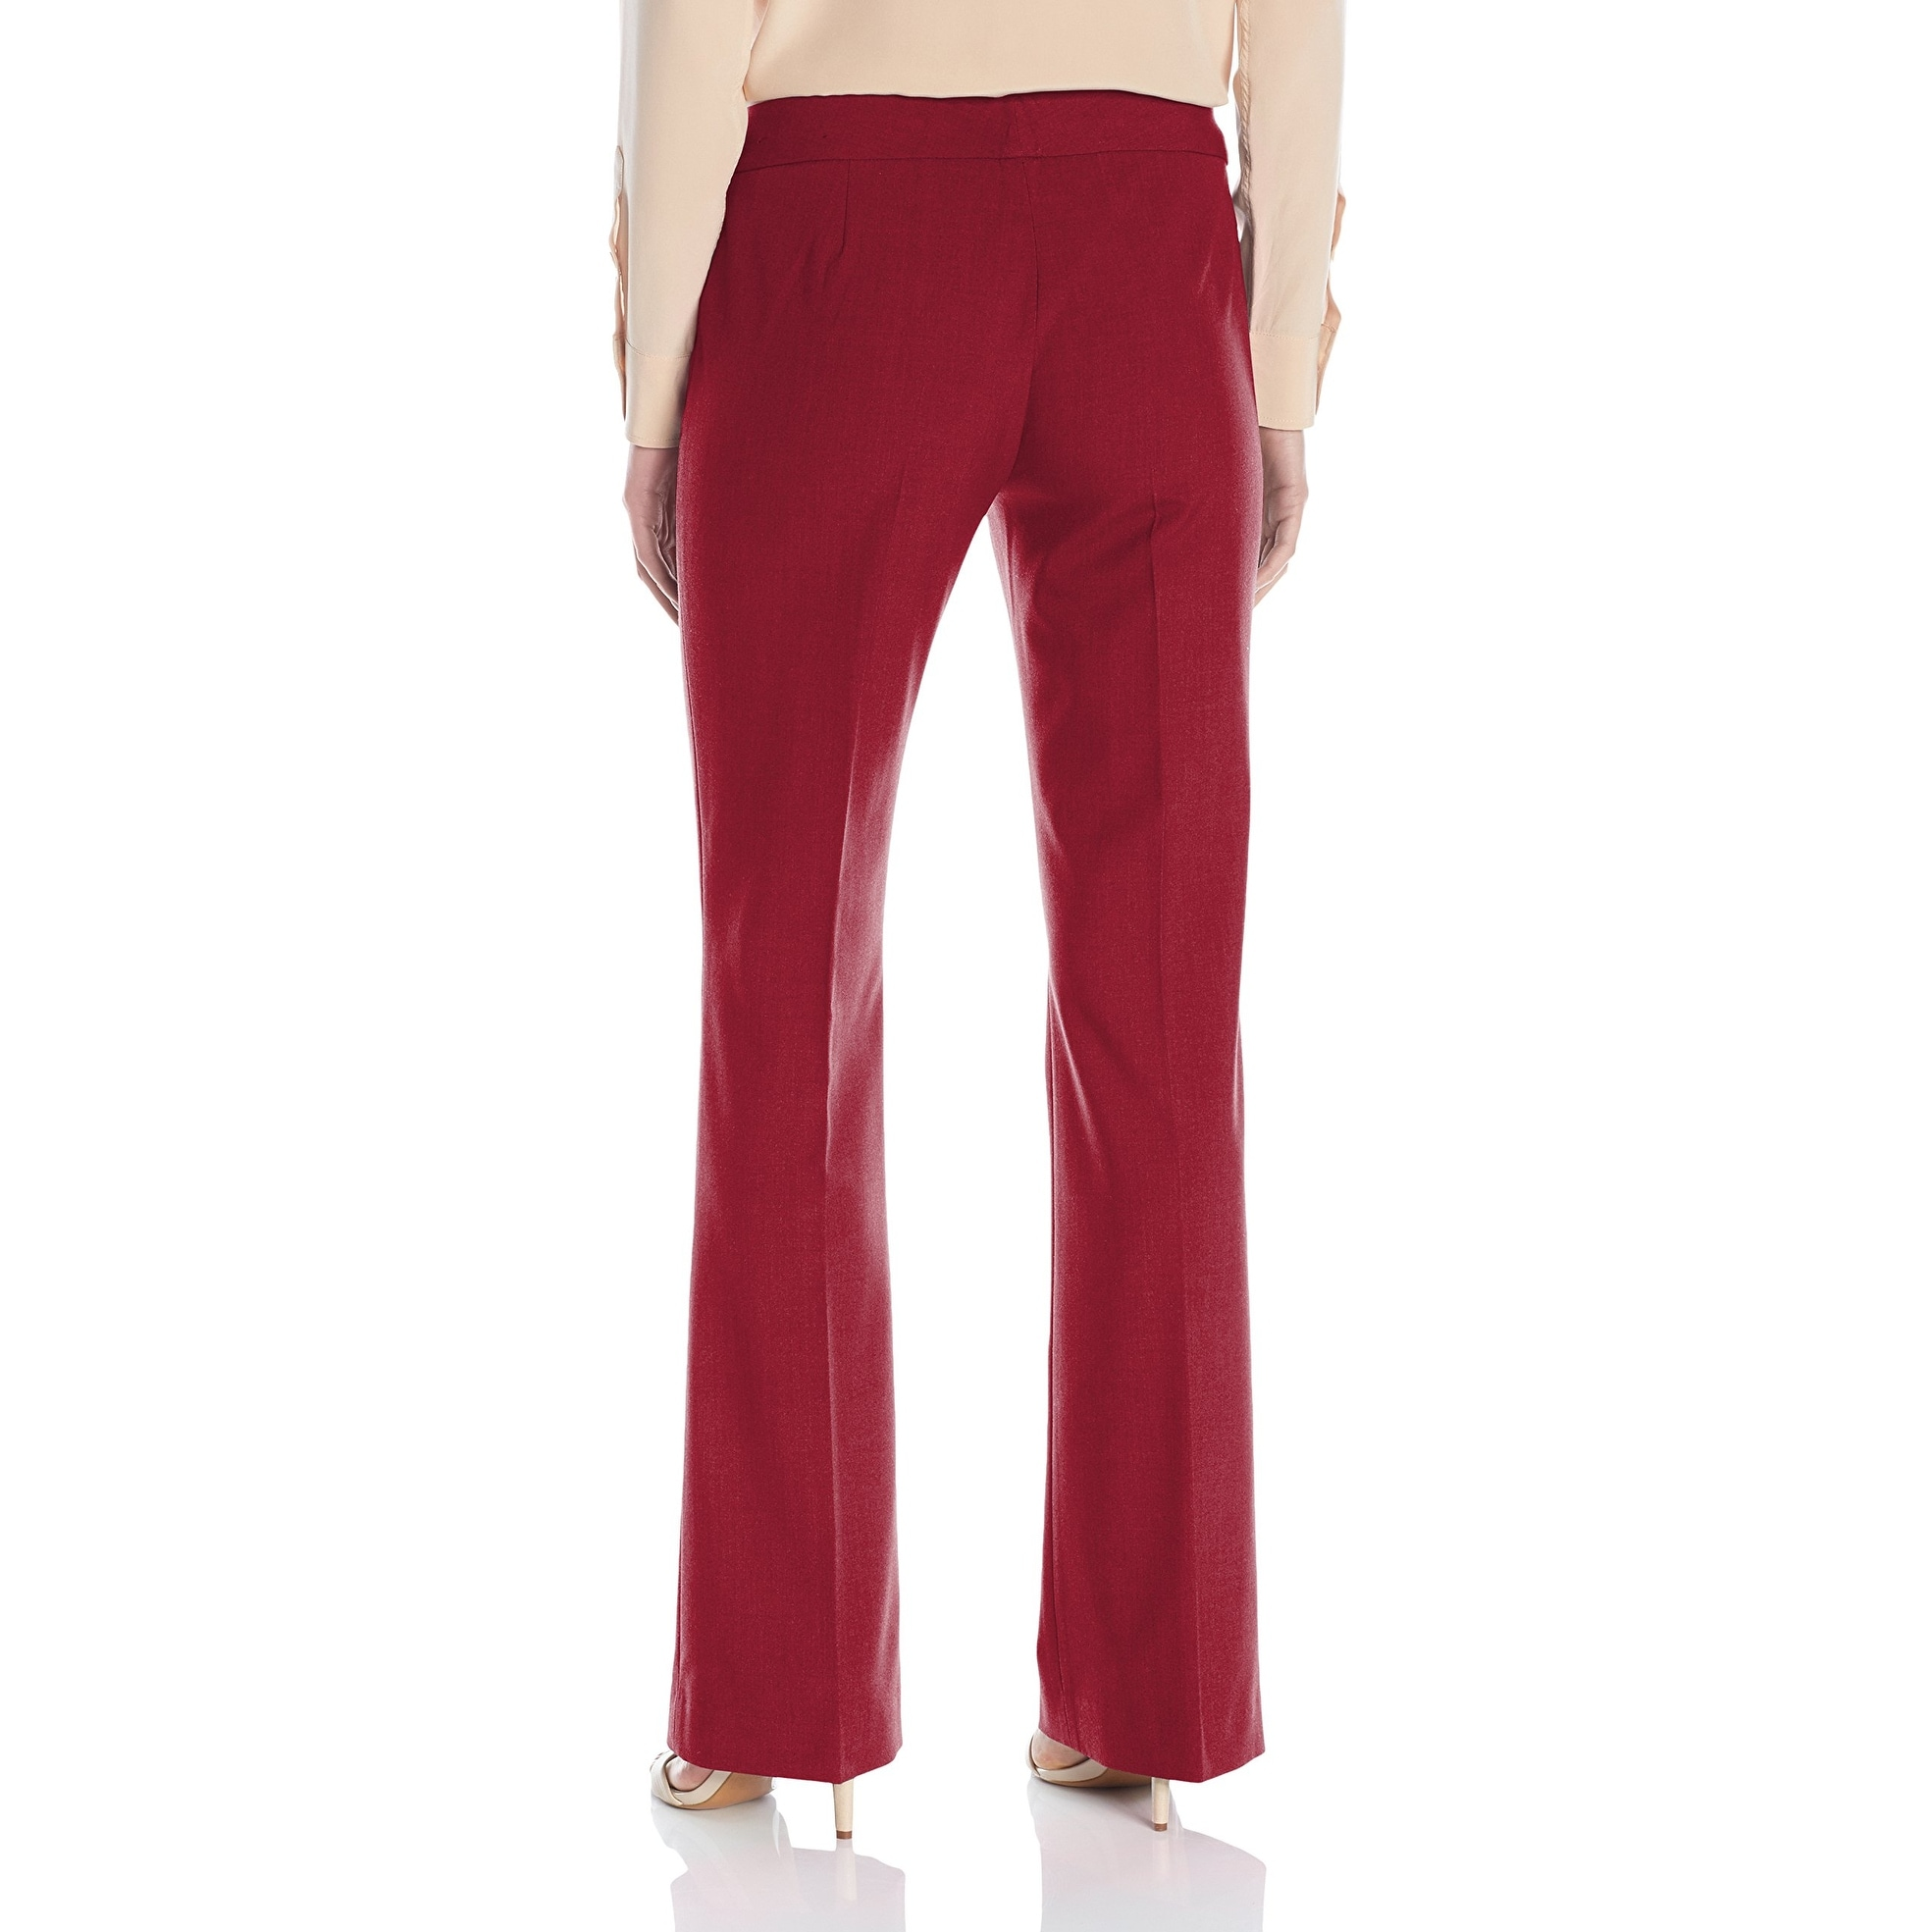 486b073f3847 Shop Nine West Dark Red Womens Size 16 Wide-Leg Dress Pants Stretch - On  Sale - Free Shipping On Orders Over $45 - Overstock - 27315351